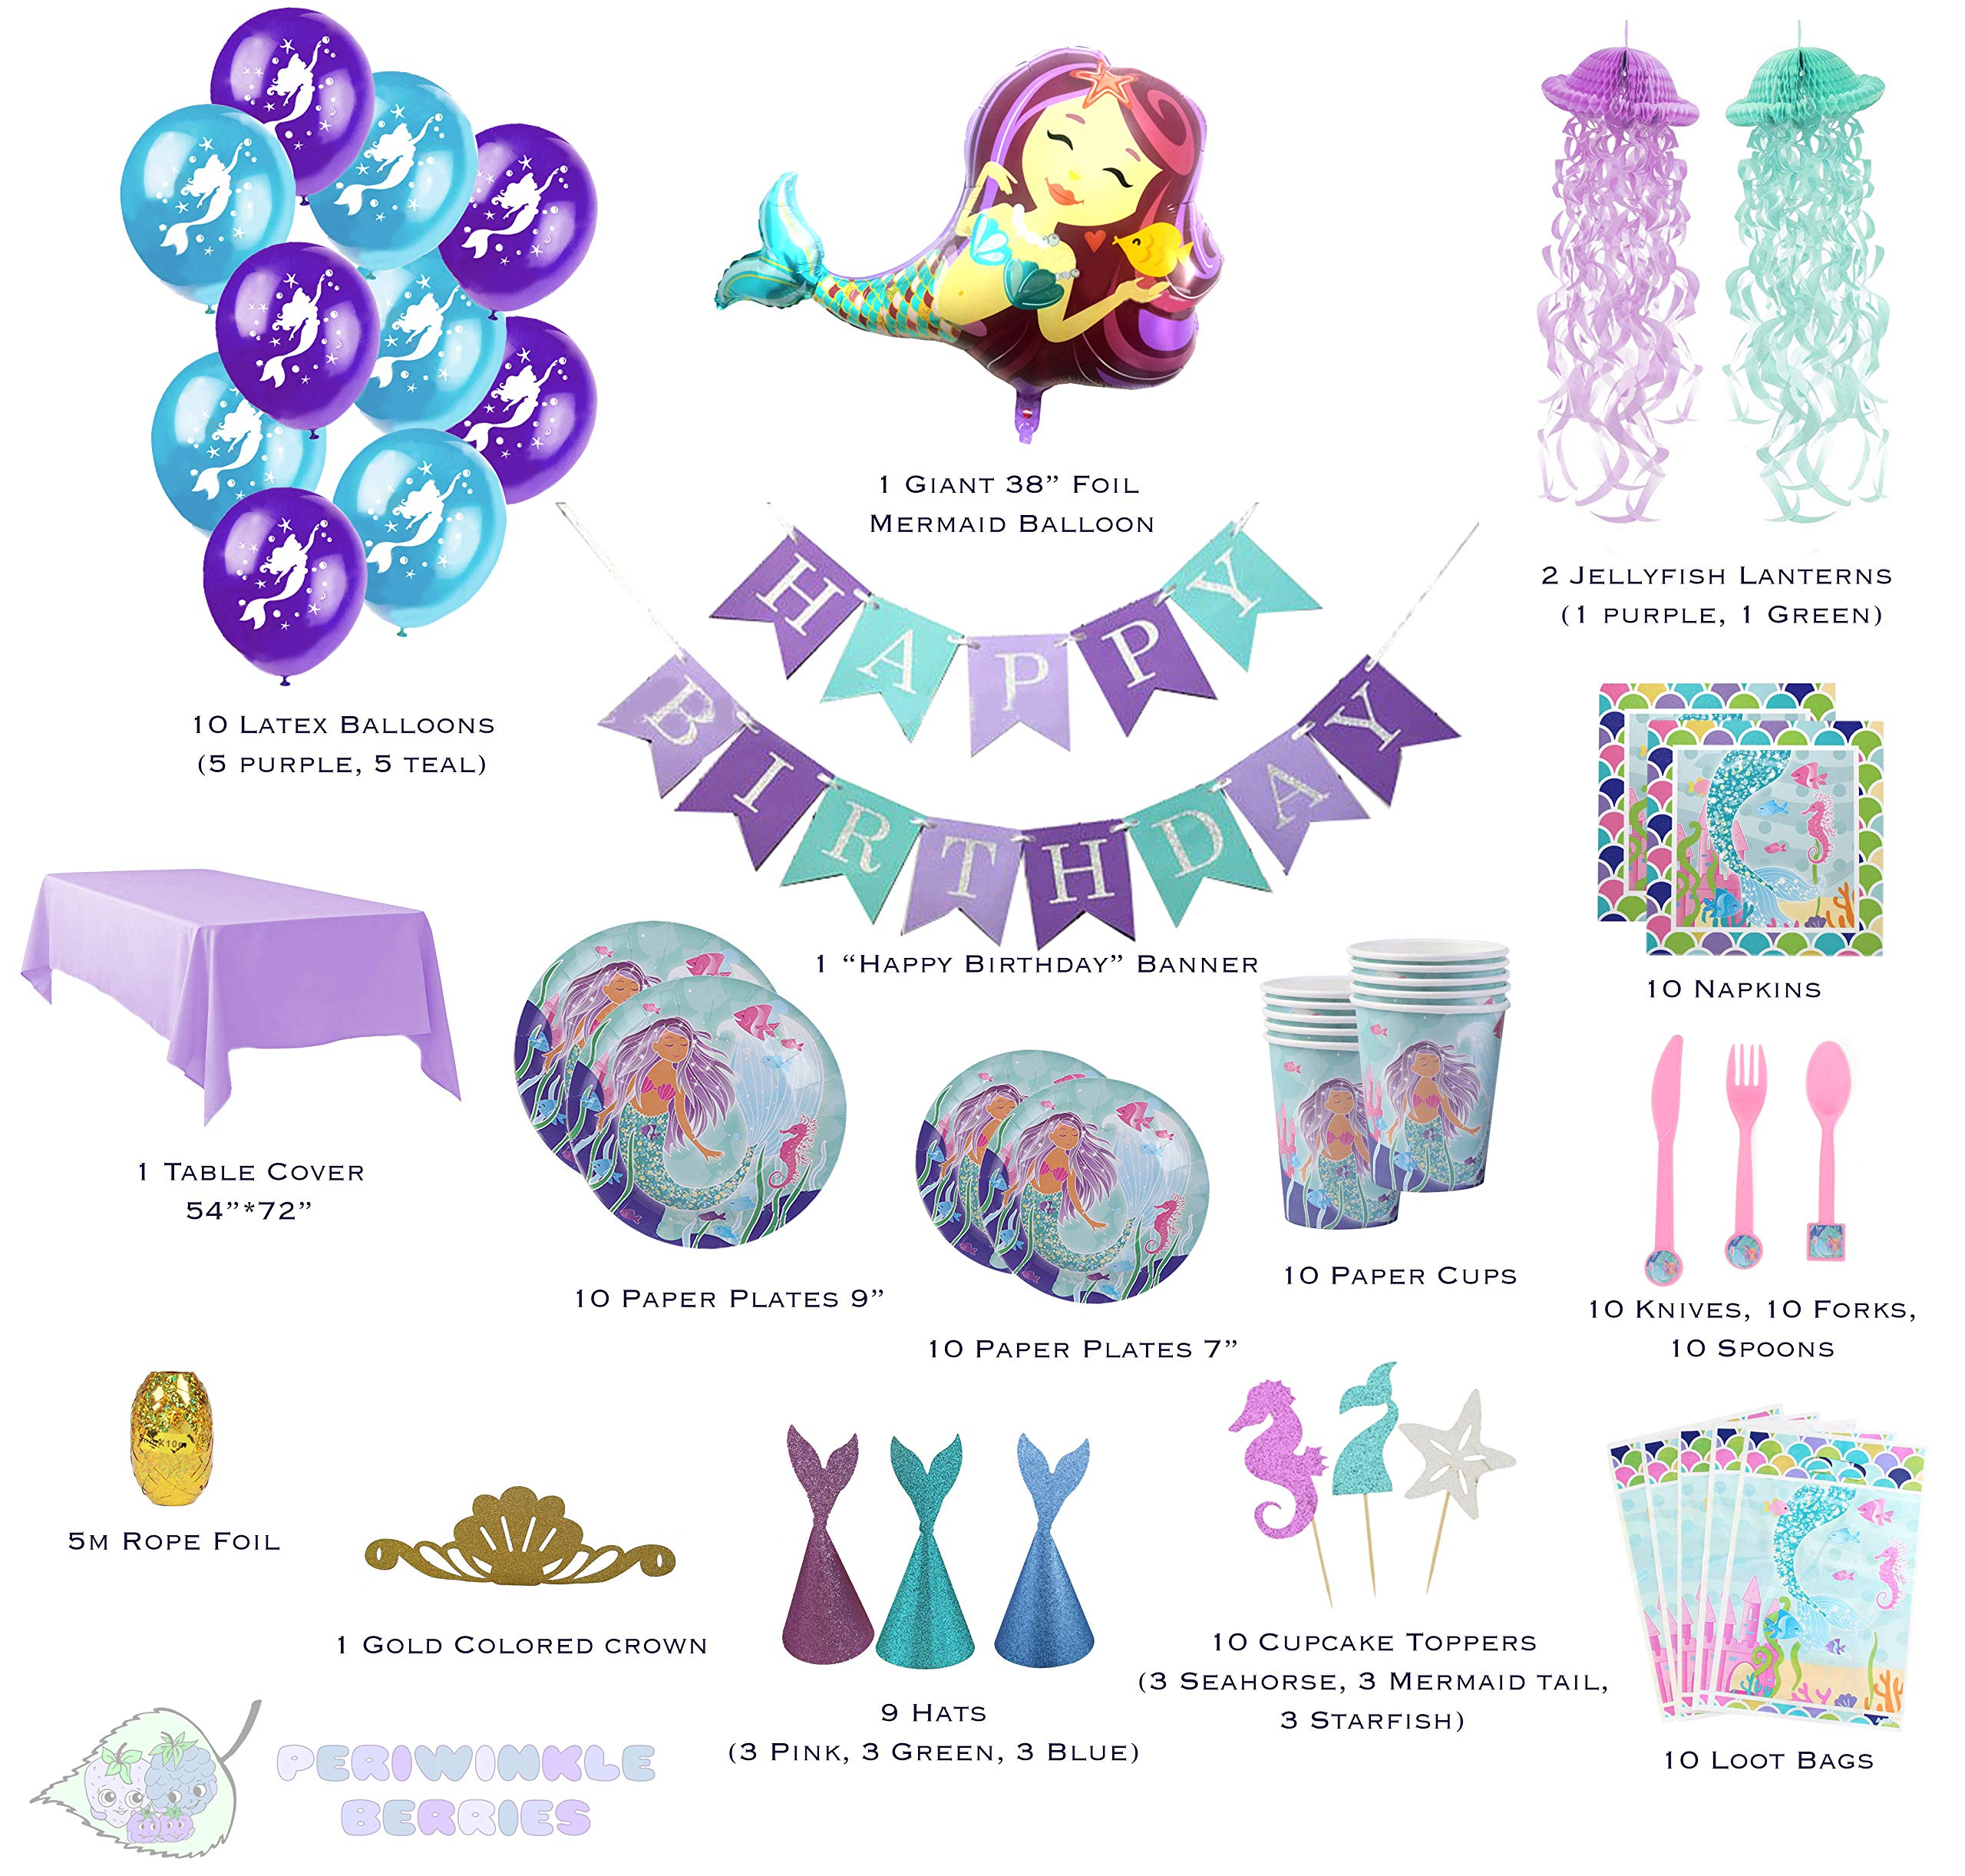 Mermaid Party Supplies - Complete Tableware and Decoration Deluxe Set - Plates, Cups, Utensils, Napkins, Table Cloth, Balloons, Happy Birthday Banner, Cupcake Topper, Favor Bags, Mermaid Hats & Crown by Periwinkle Berries (Image #2)